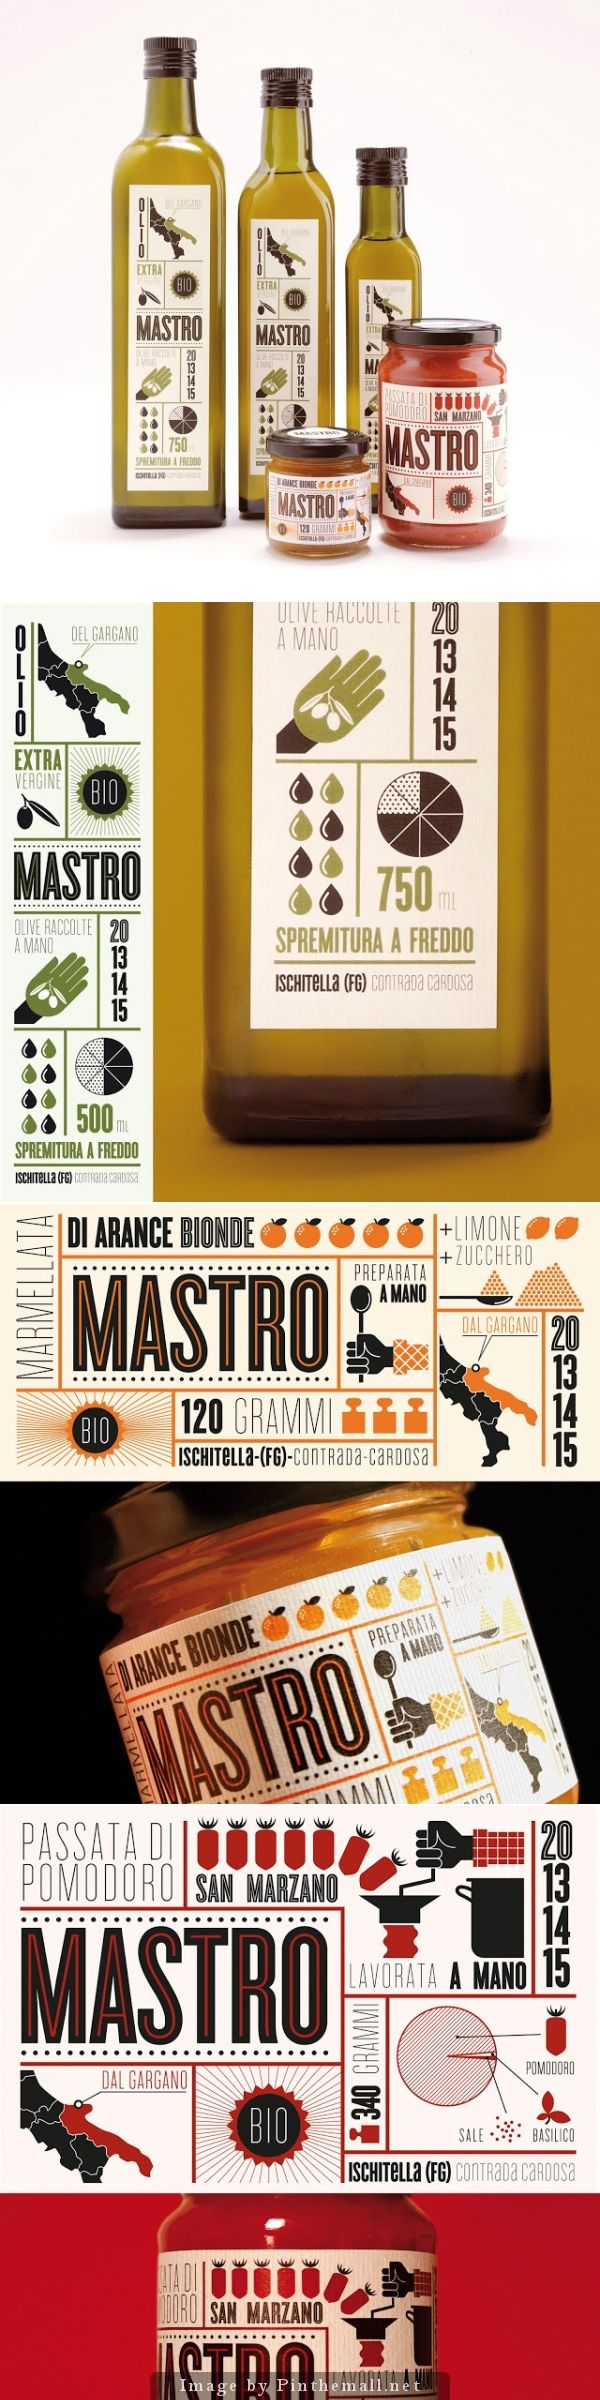 Mastro Azienda Agricola Creative Agency: The 6th Concept: Emanuele Basso and Elena Carella Graphic design: Emanuele Basso Client: Mastro Azienda Agricola Location: Milano/ Italy Project Type: Commercial Work